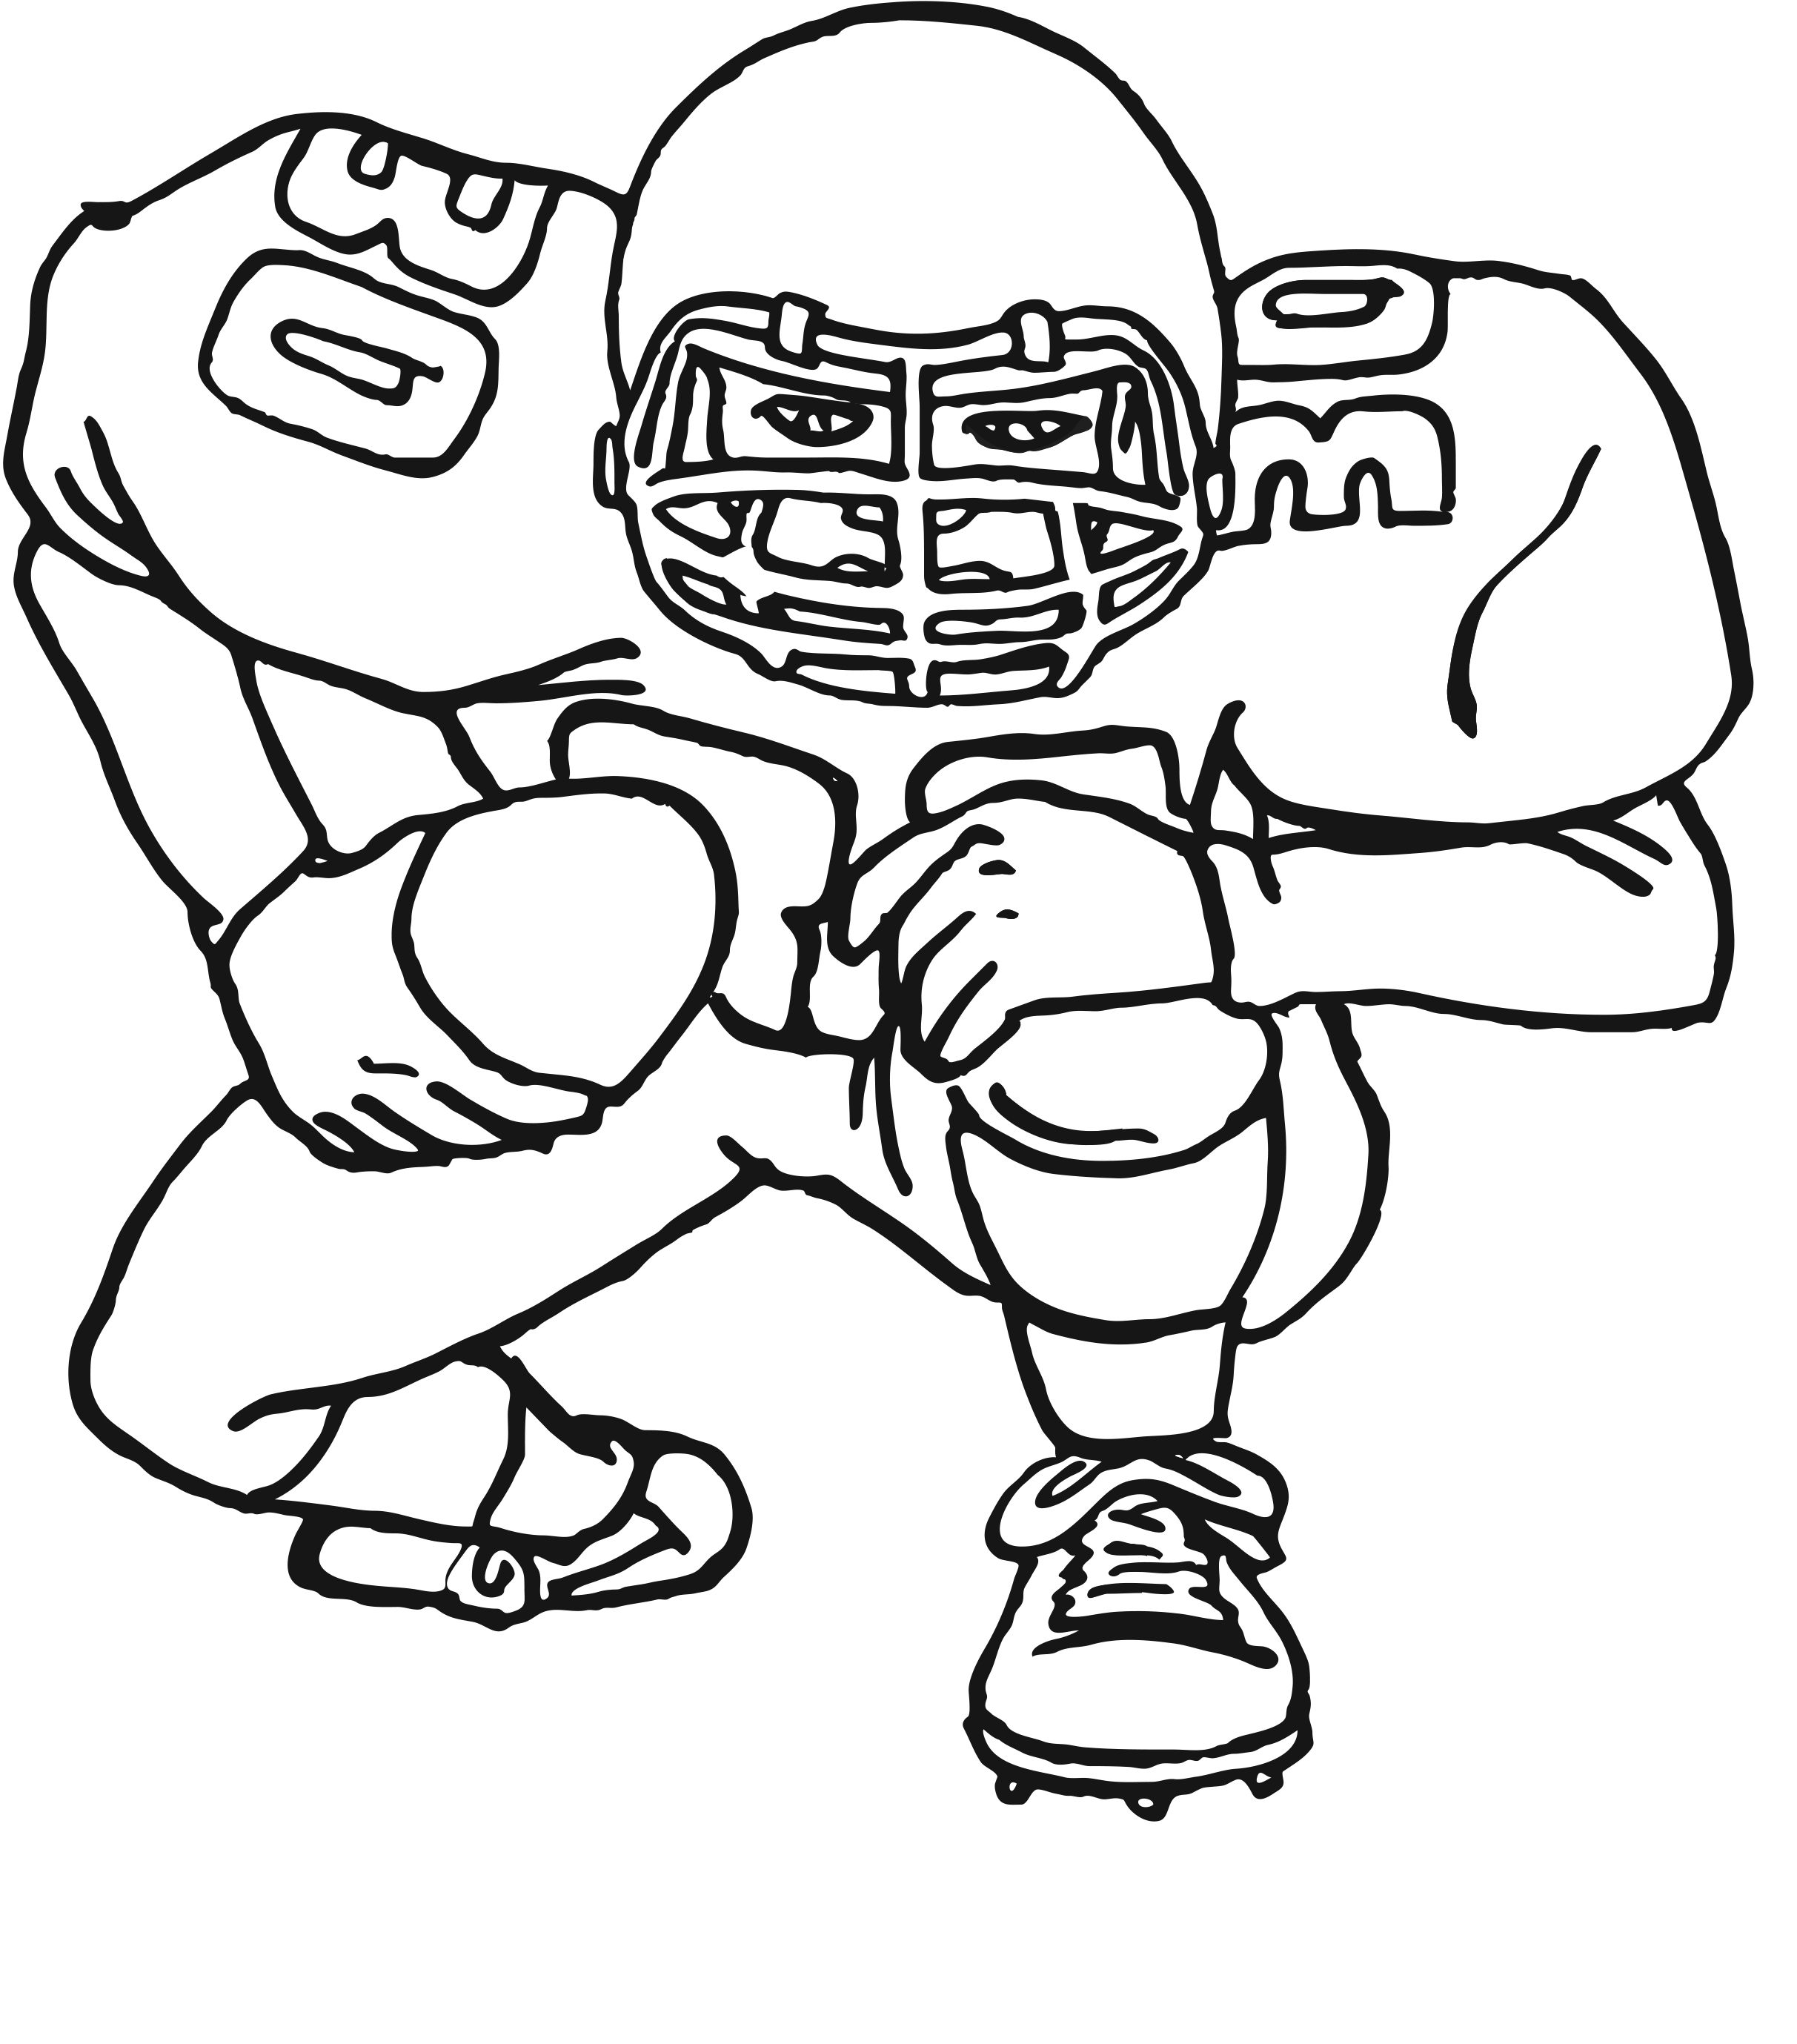 free football coloring sheets - Nuruf.comunicaasl.com